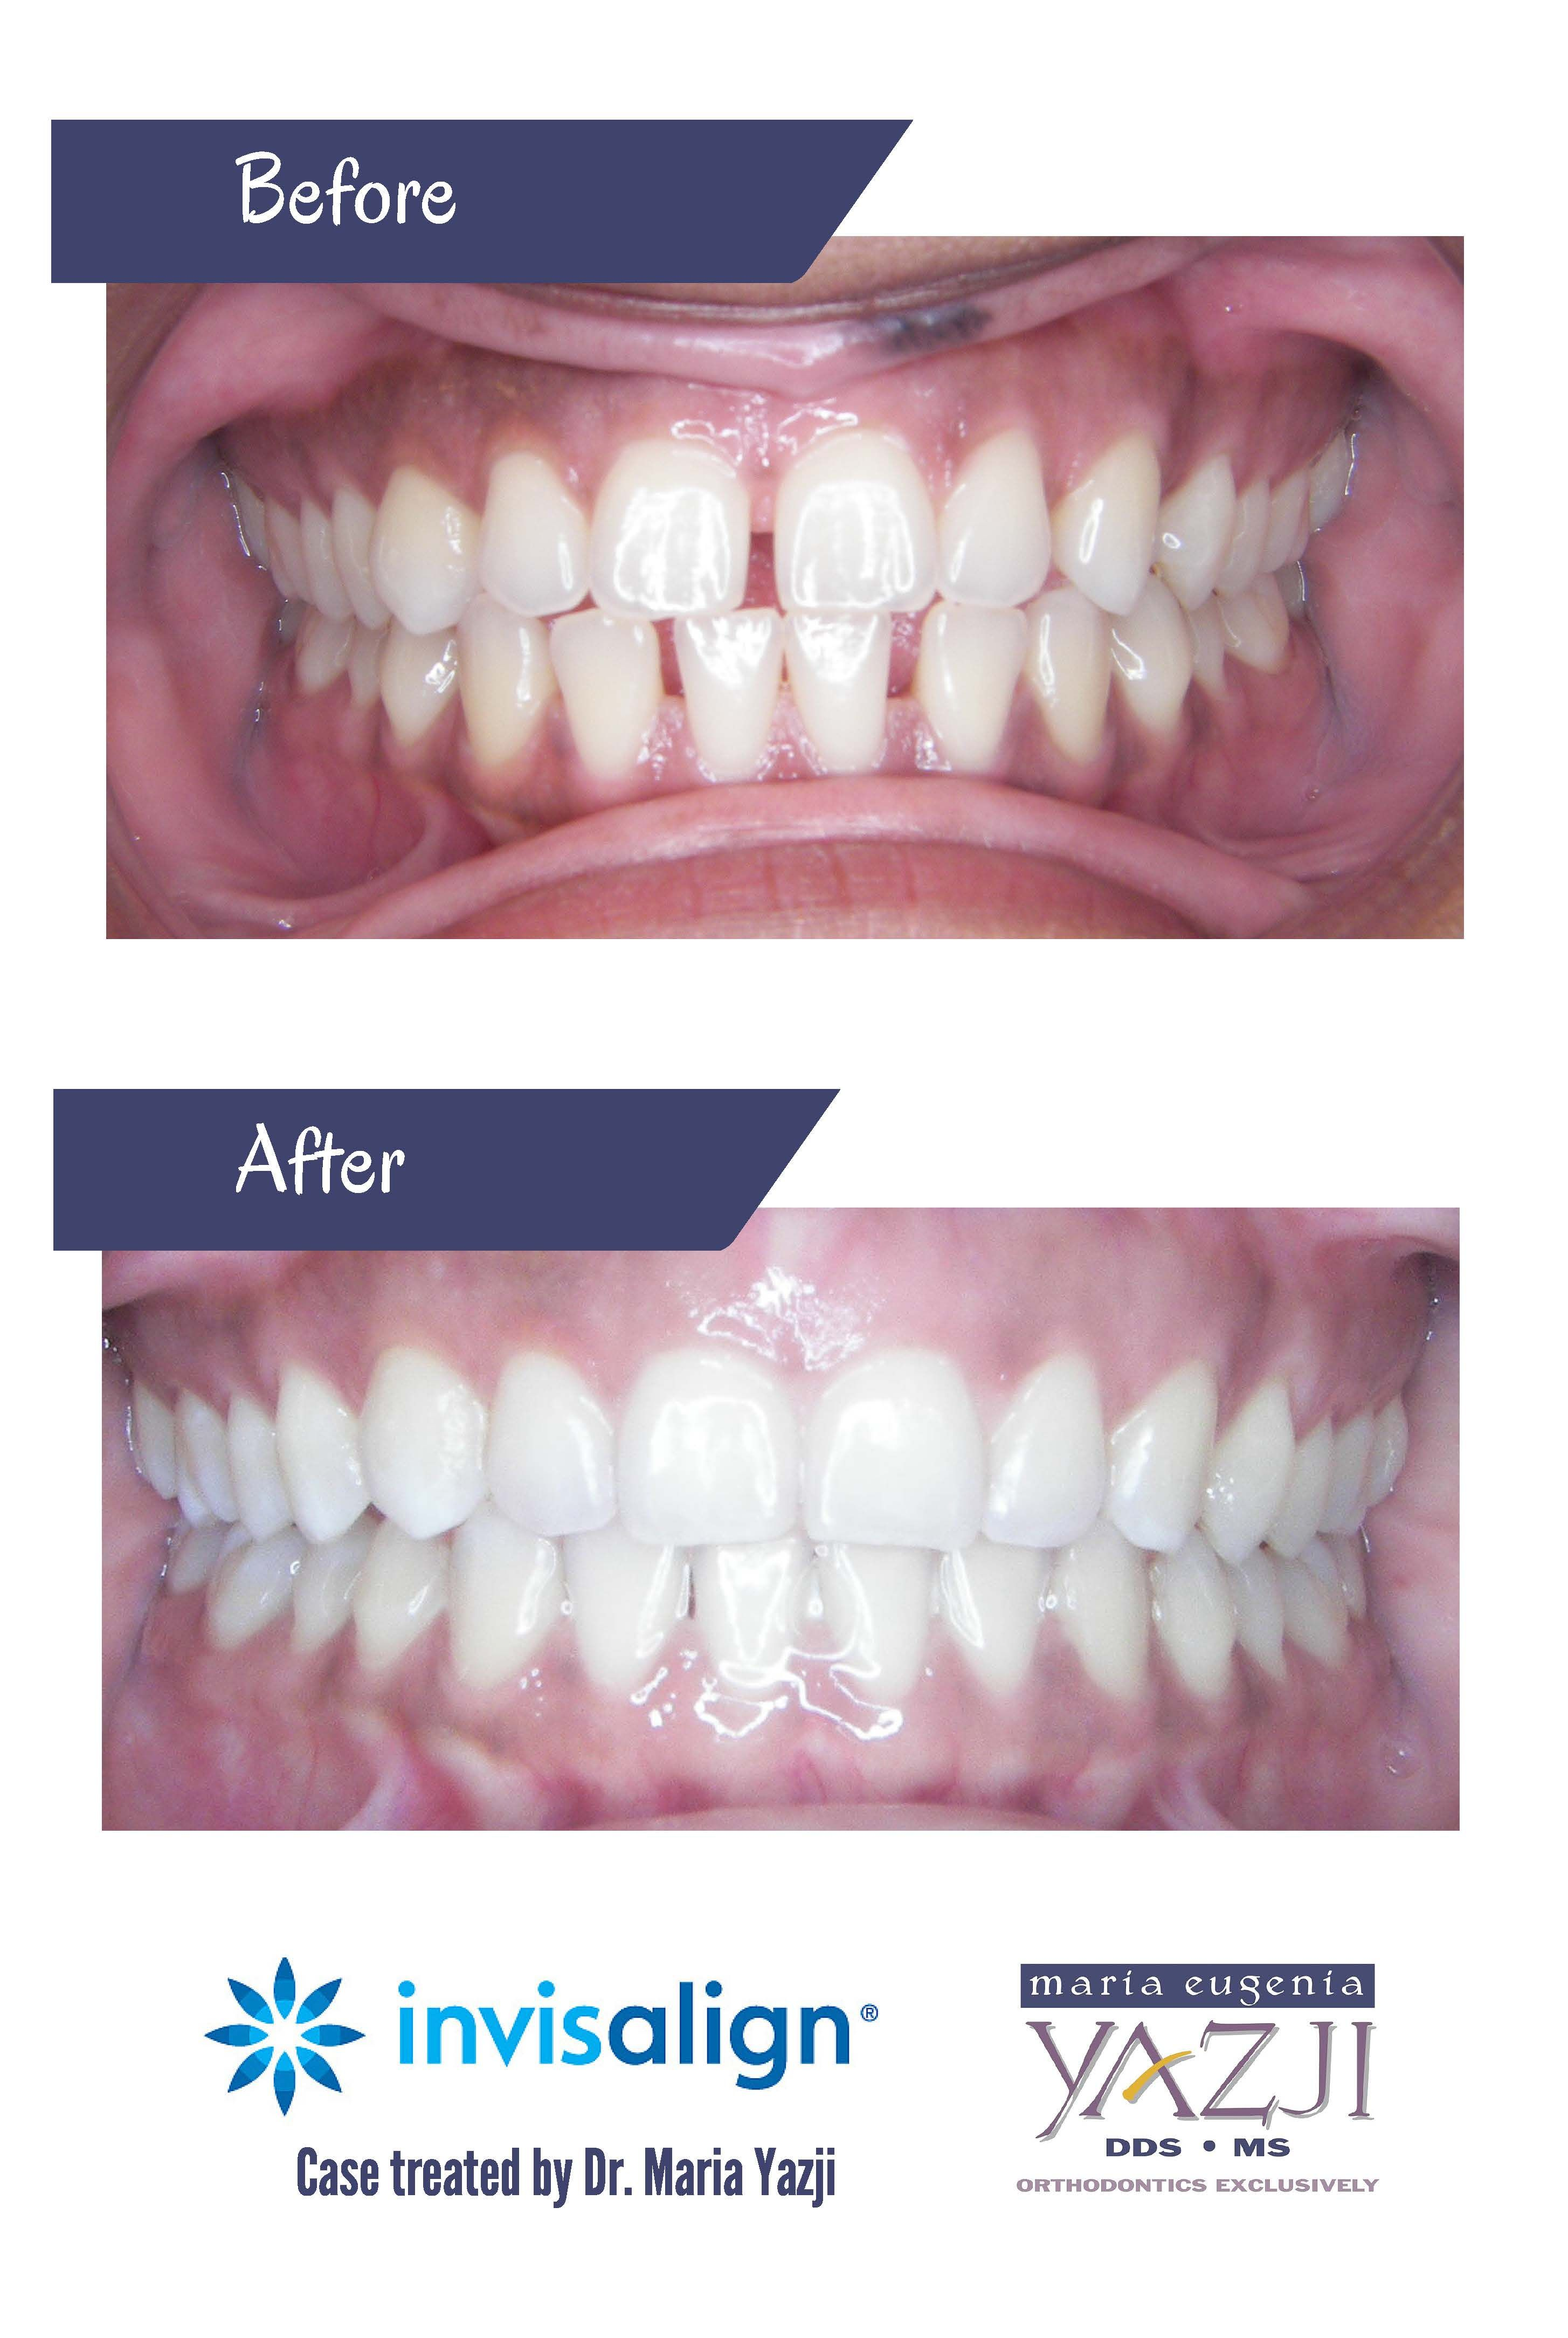 Pin on invisalign before after